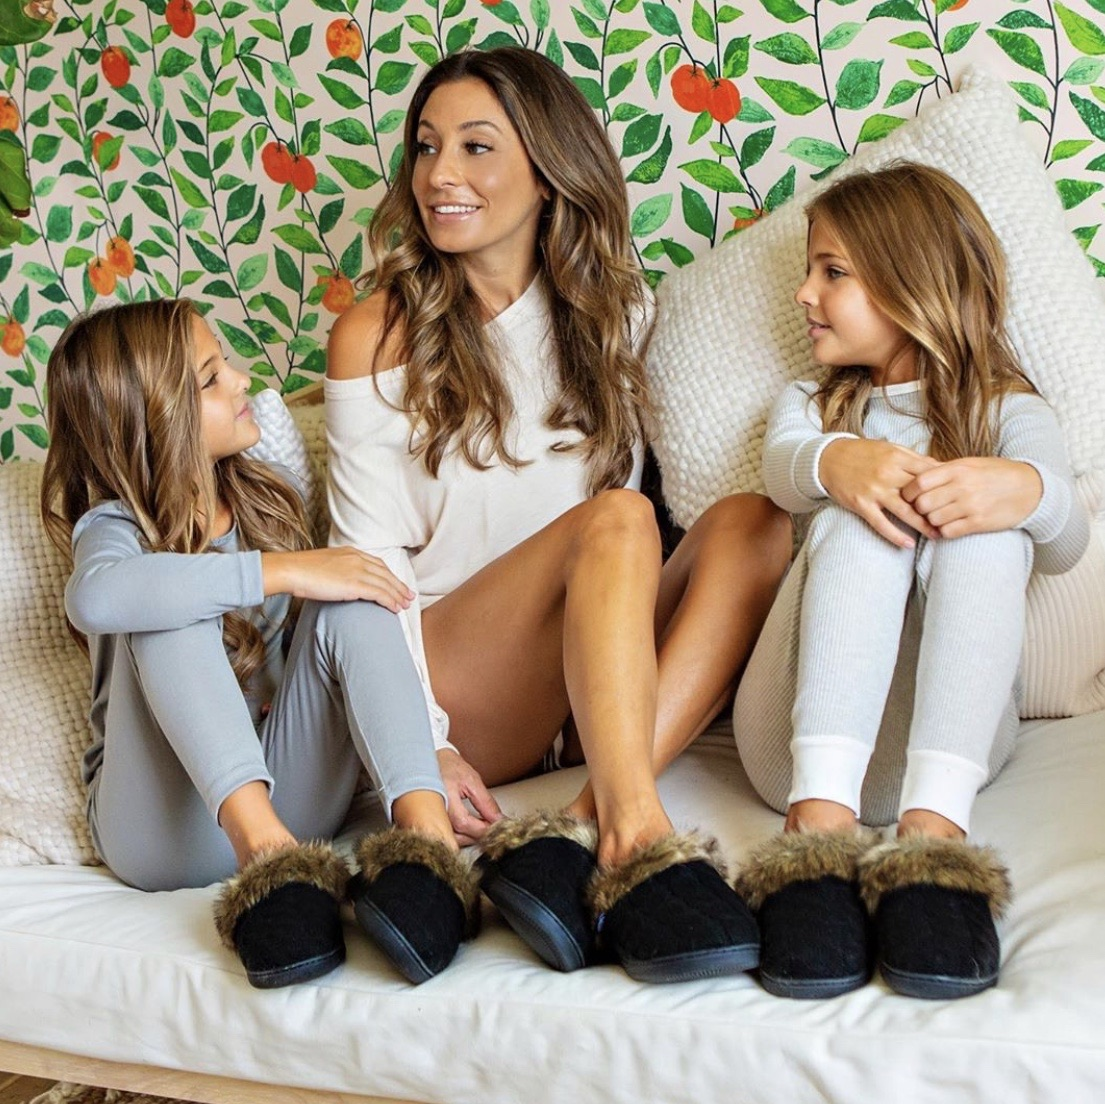 MUK LUKS®, The Clements Twins launches a new fashion line - Mommy & Me